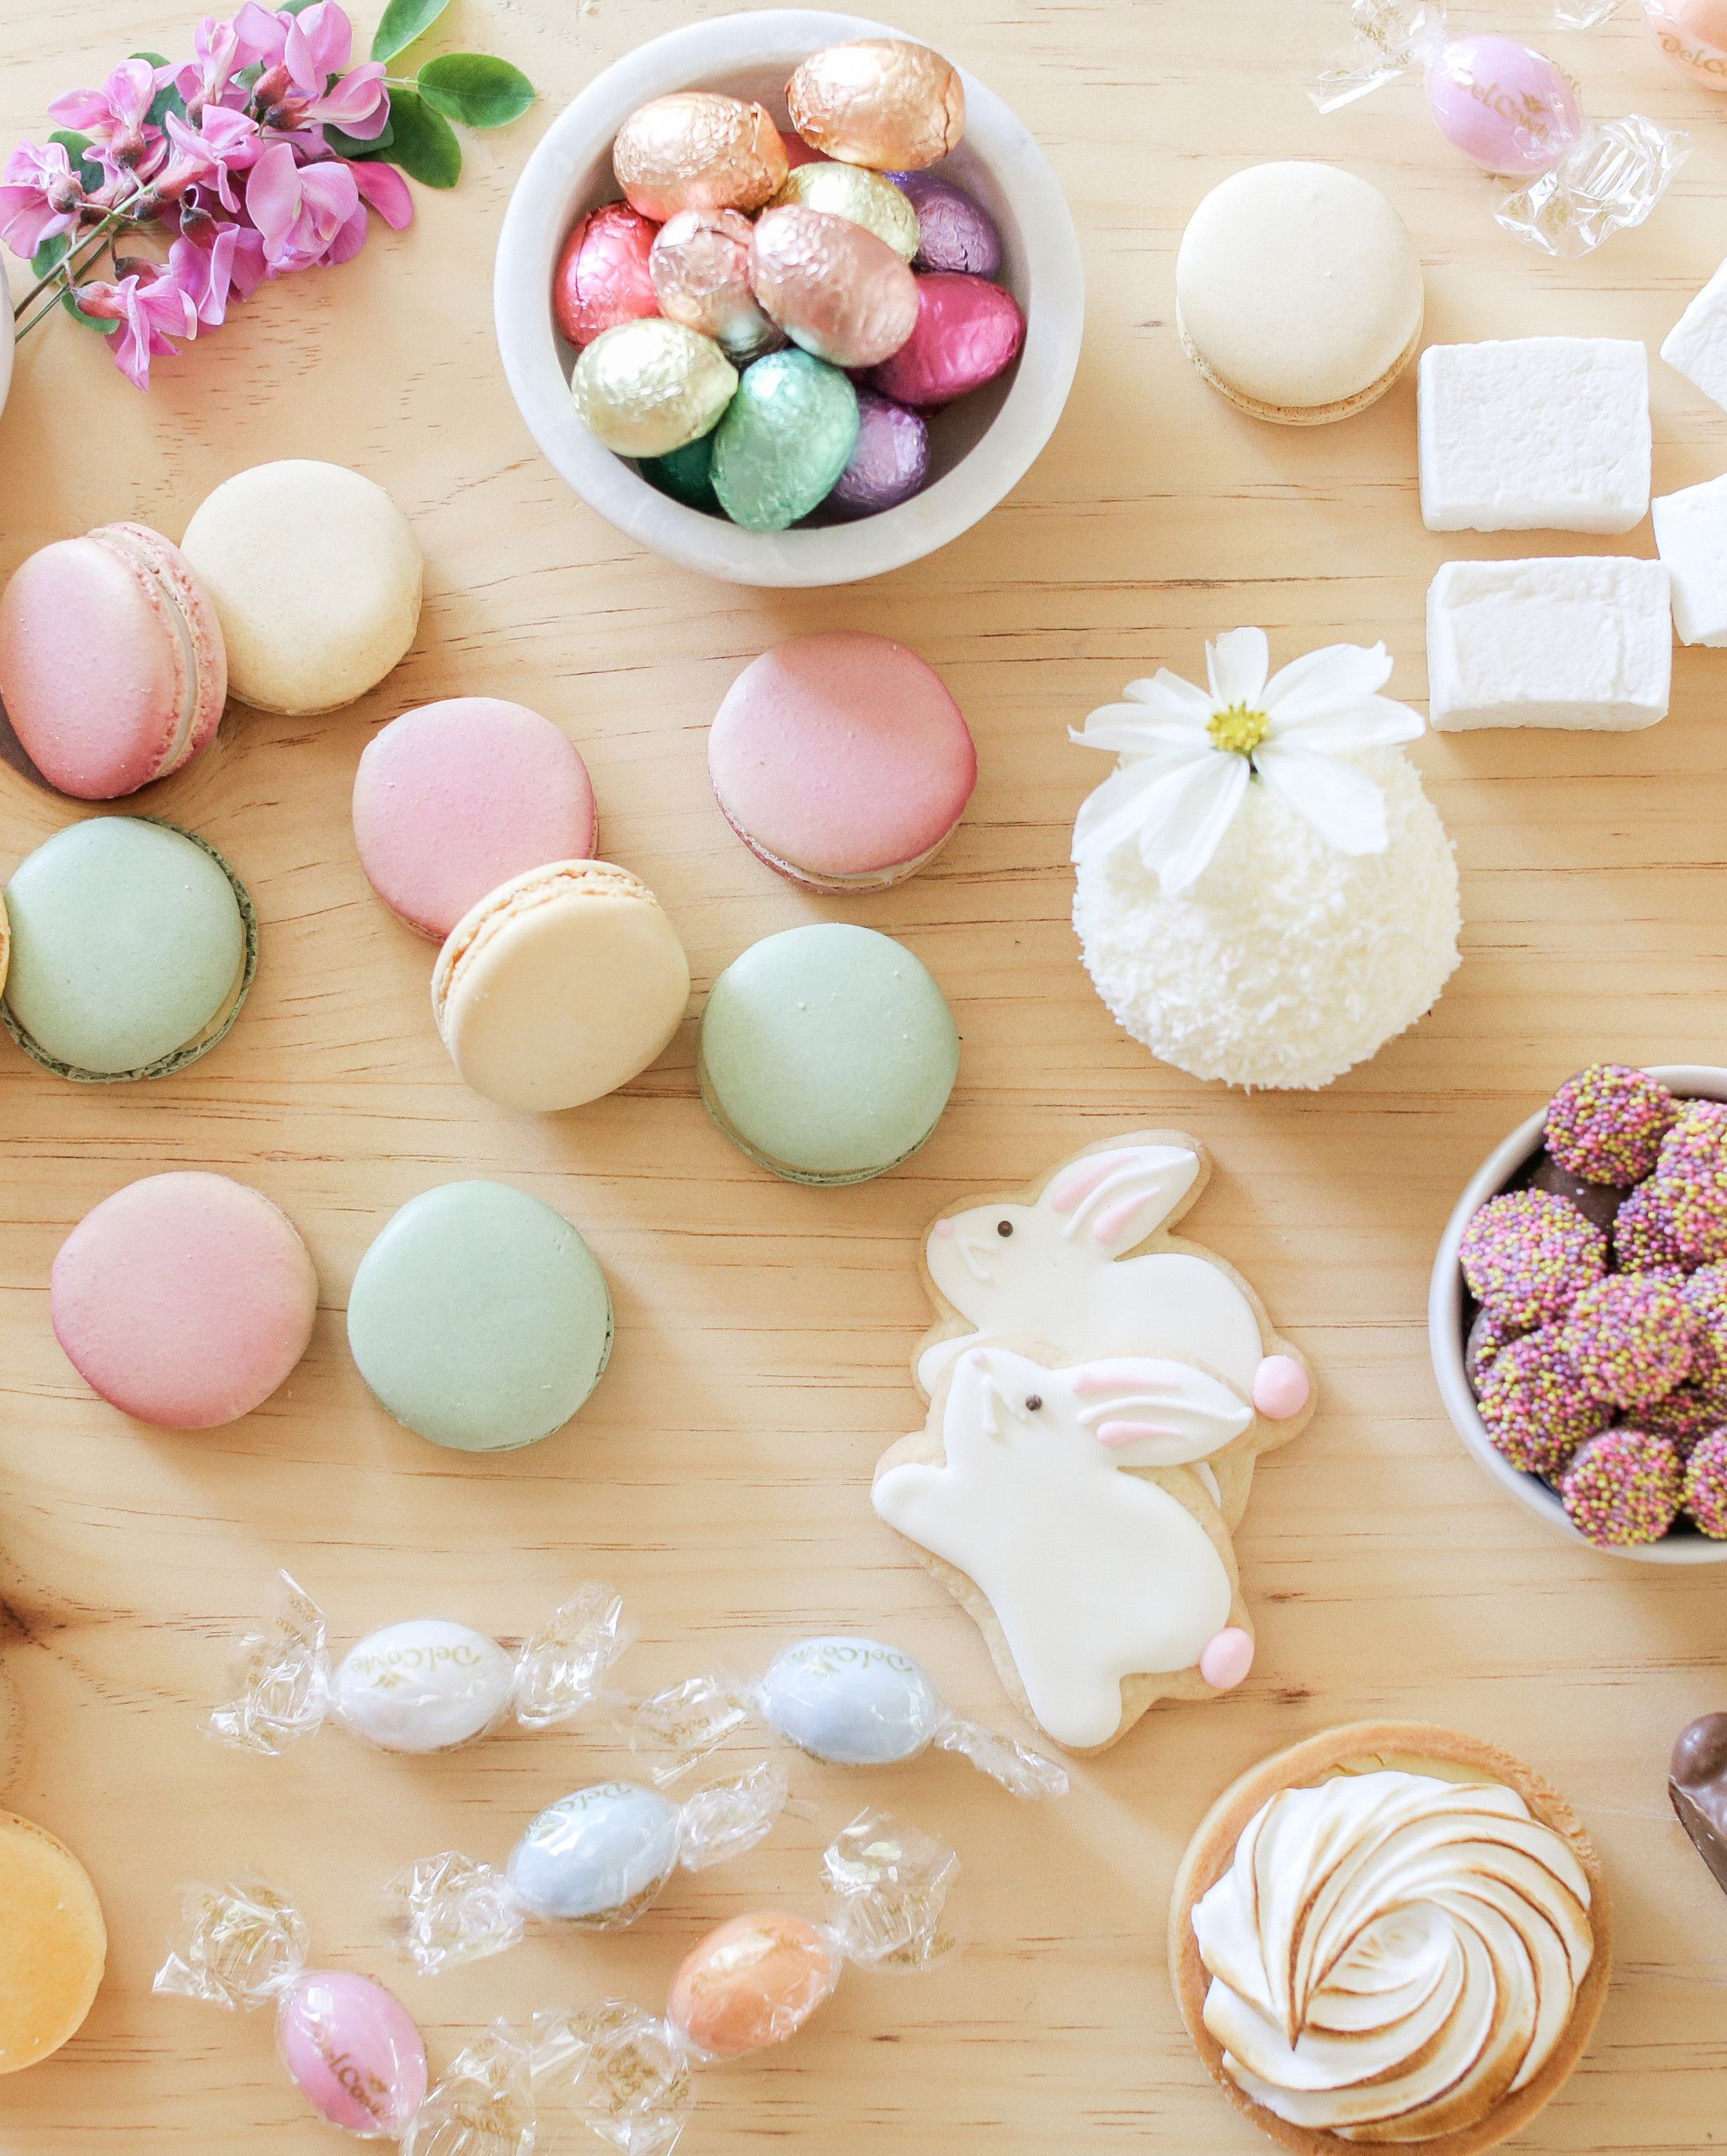 This Charming Easter Party is All About Pretty-in-Pastel Desserts | Martha Stewart Living - Make just one or two main desserts and then add in Easter candy like jelly beans, marshmallows, chocolate eggs and bunnies.